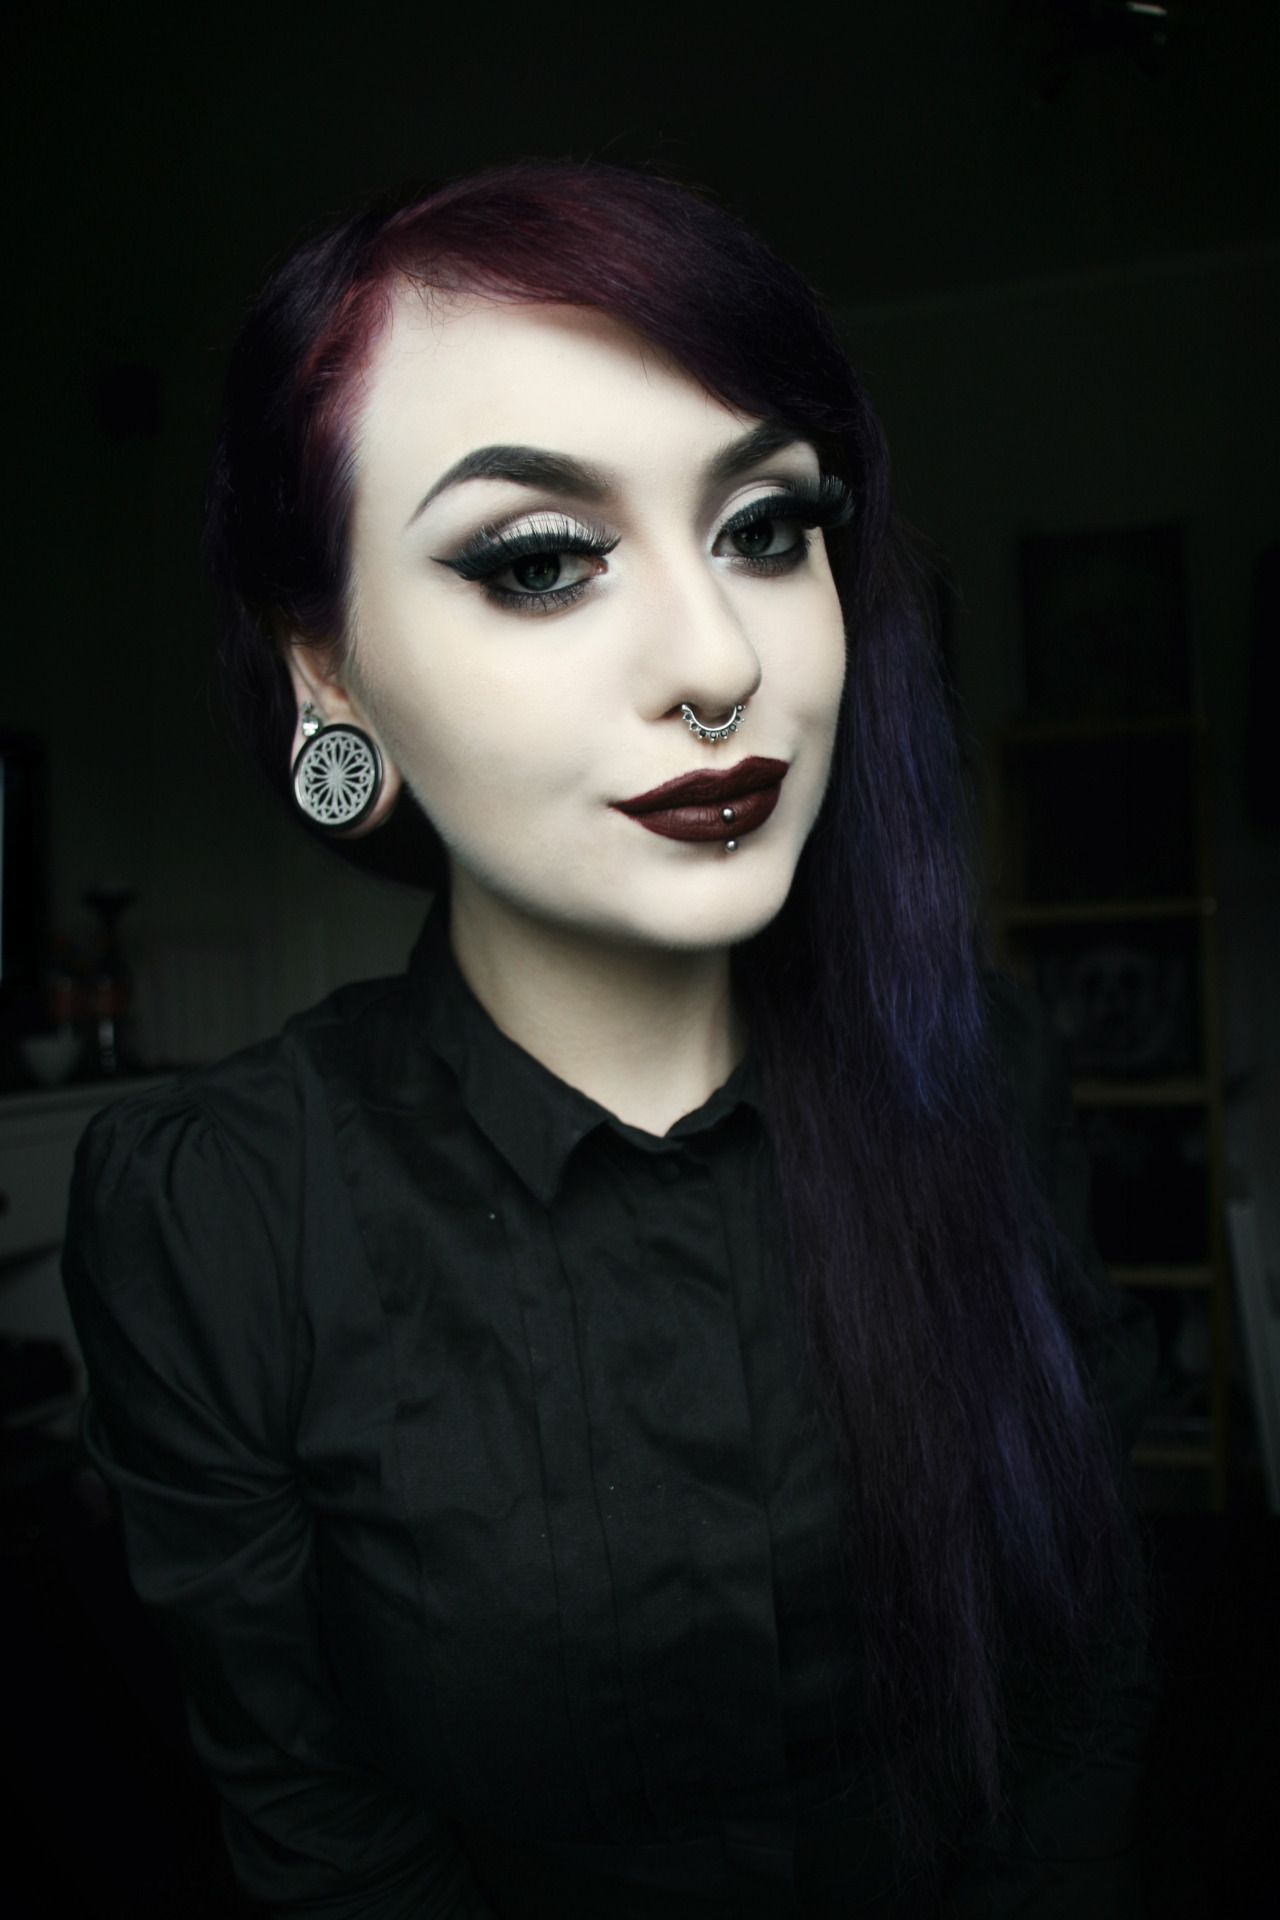 1000 ideas about pastel goth makeup on pinterest nu goth makeup - Gothic Makeup